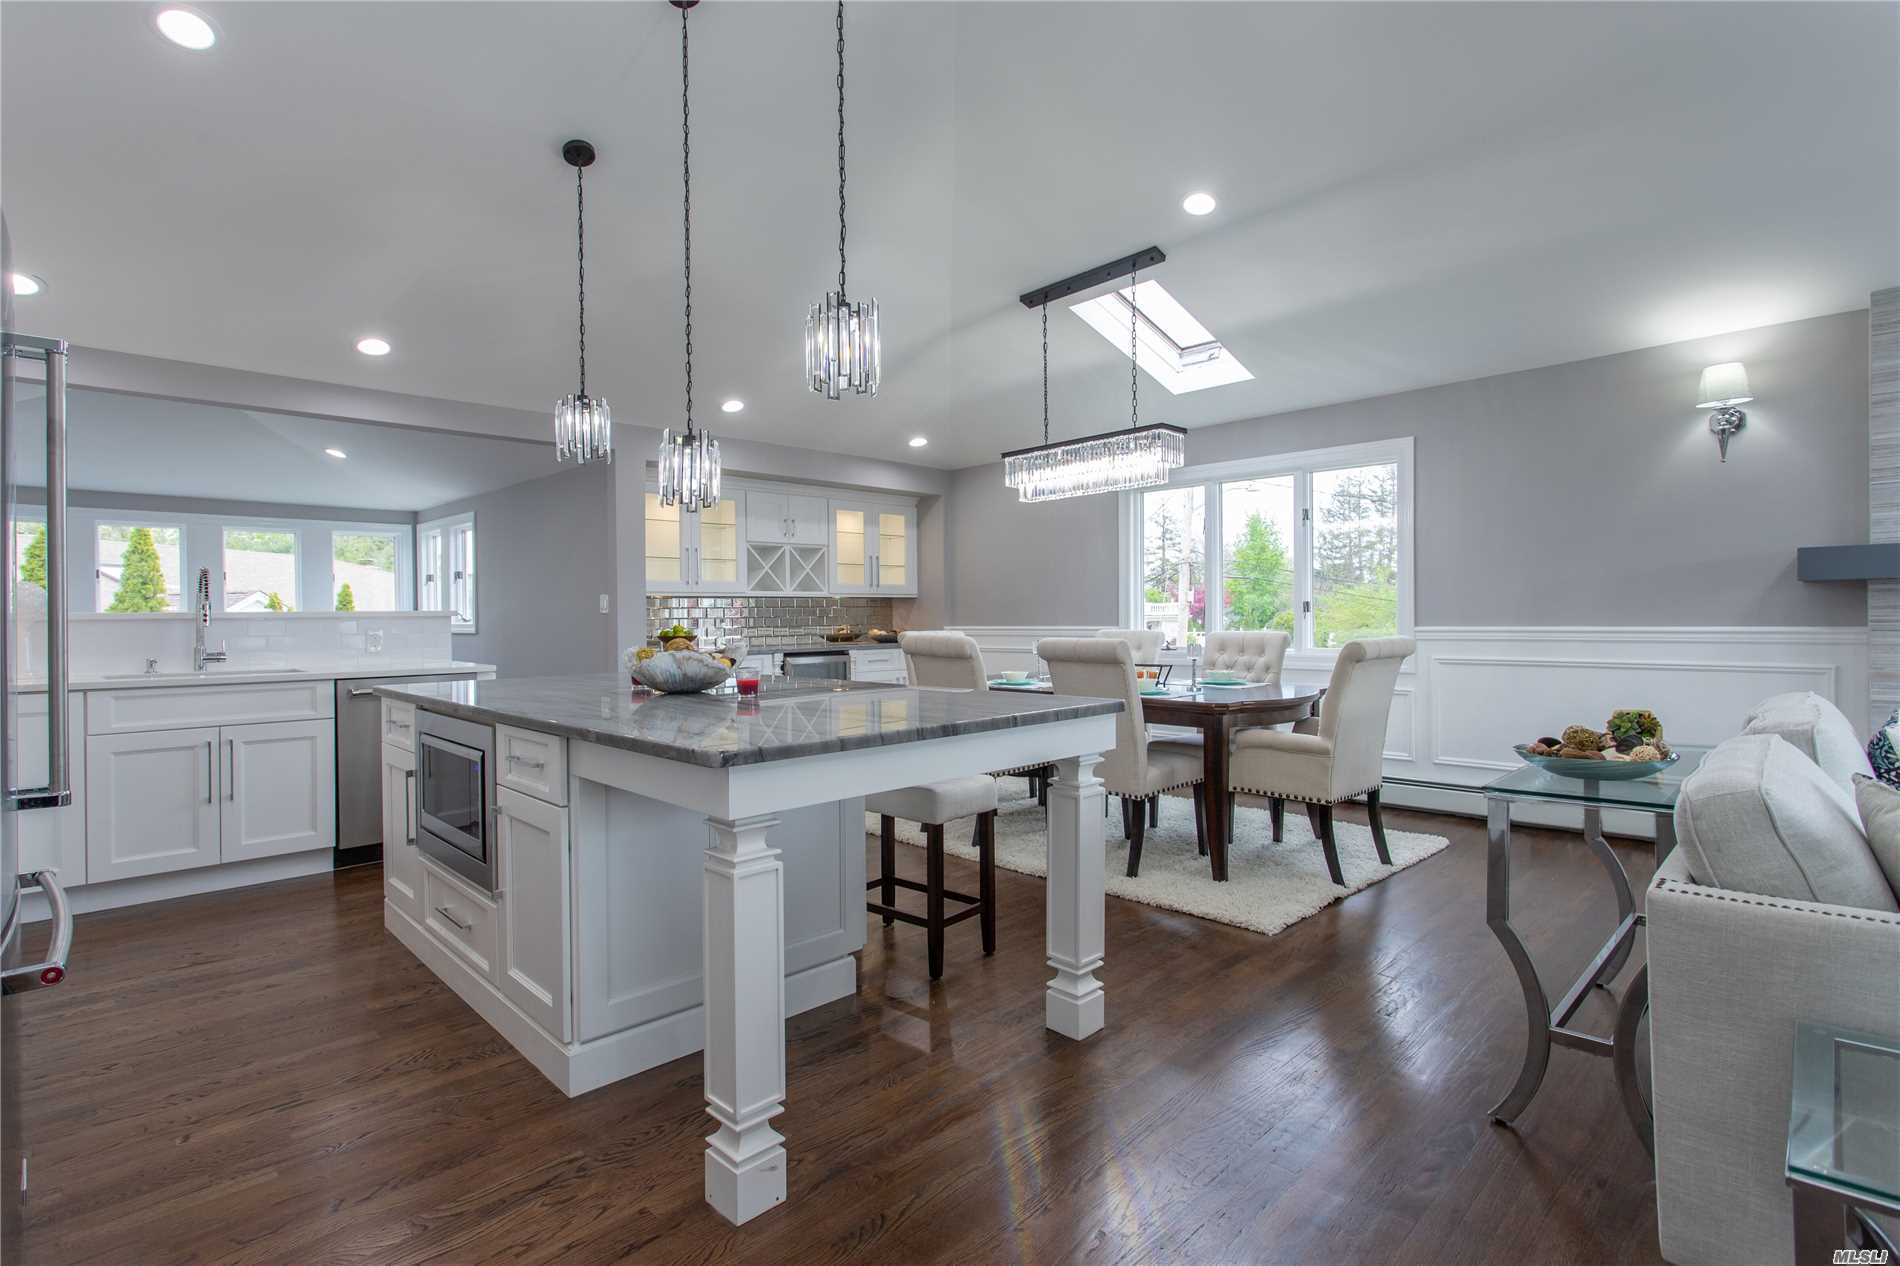 333 S Riviera Dr 11758 - One of Massapequa Homes for Sale